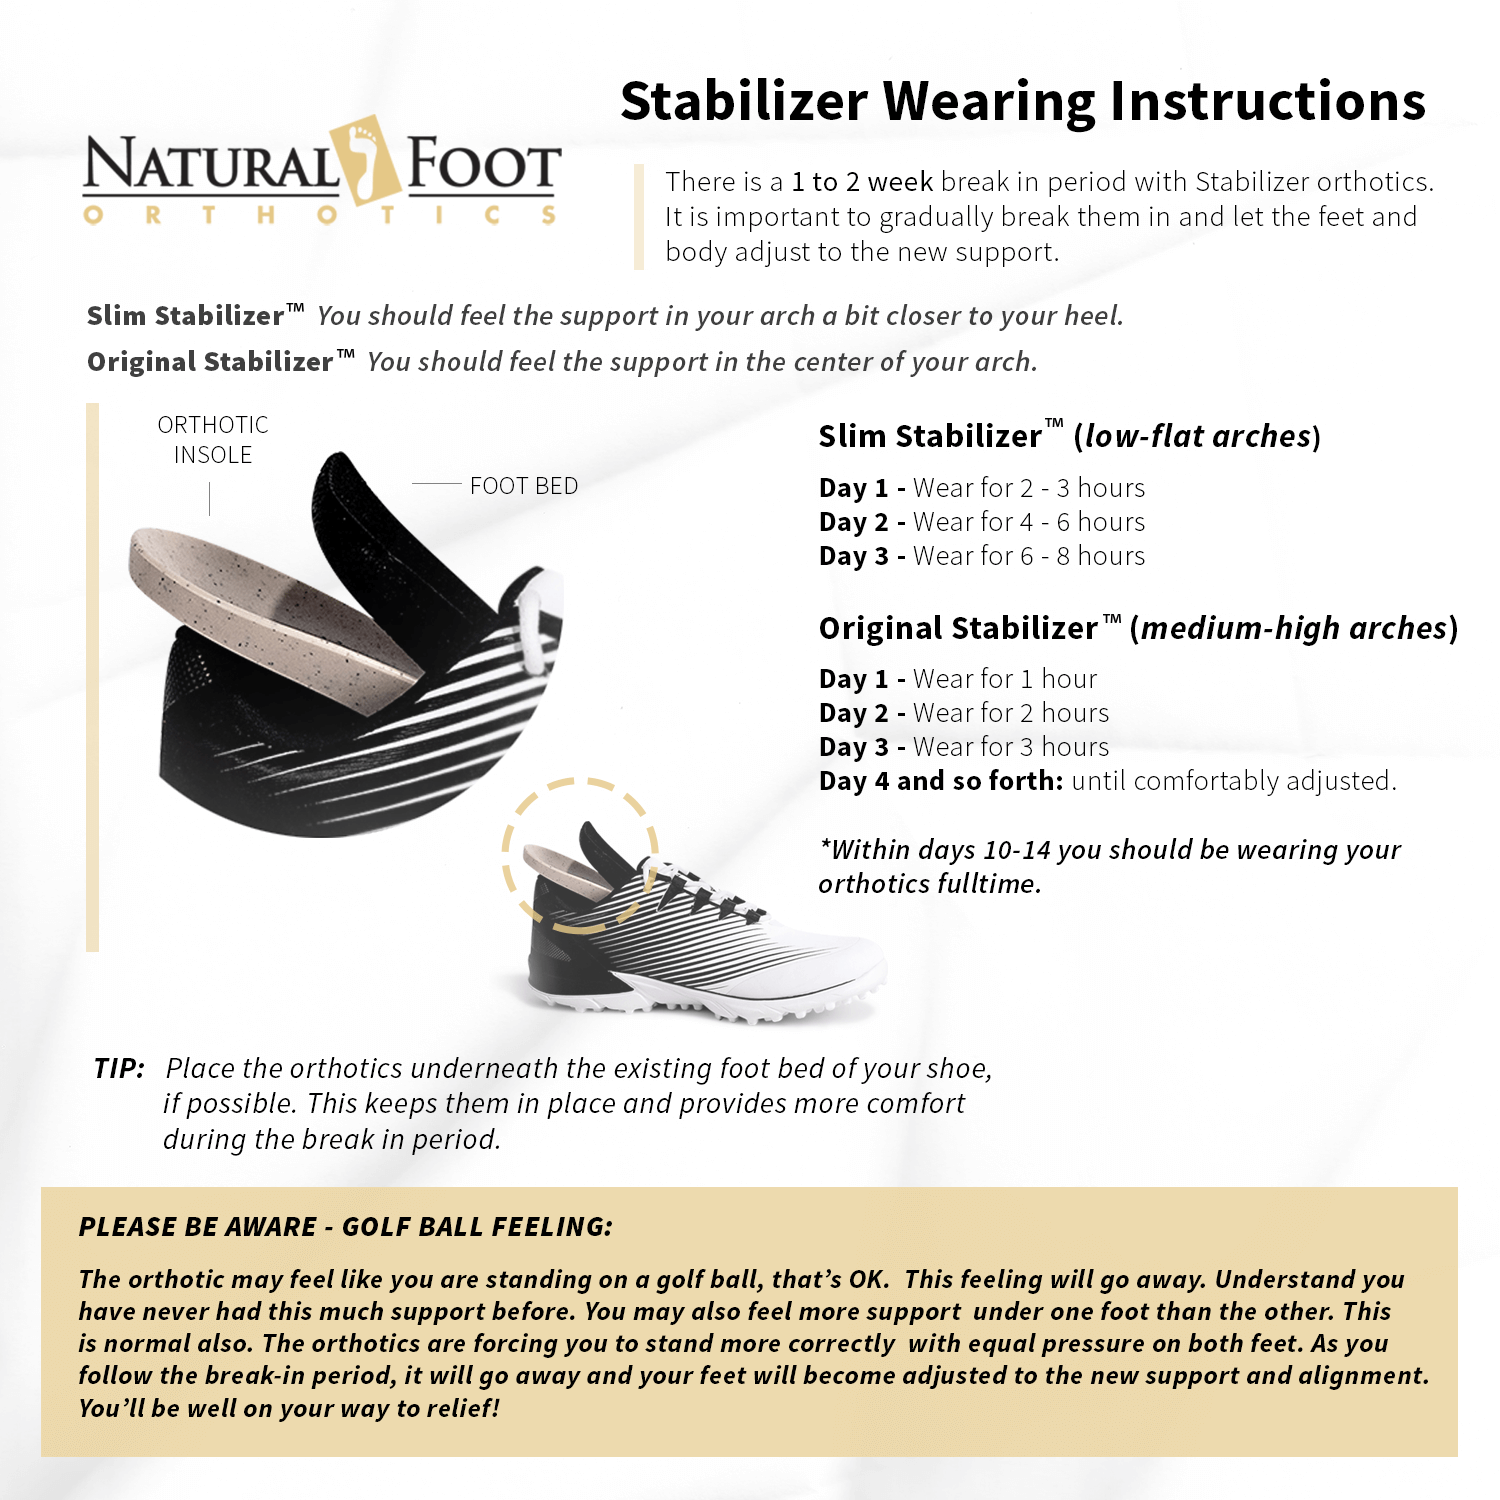 natural foot orthotics wearing guidelines